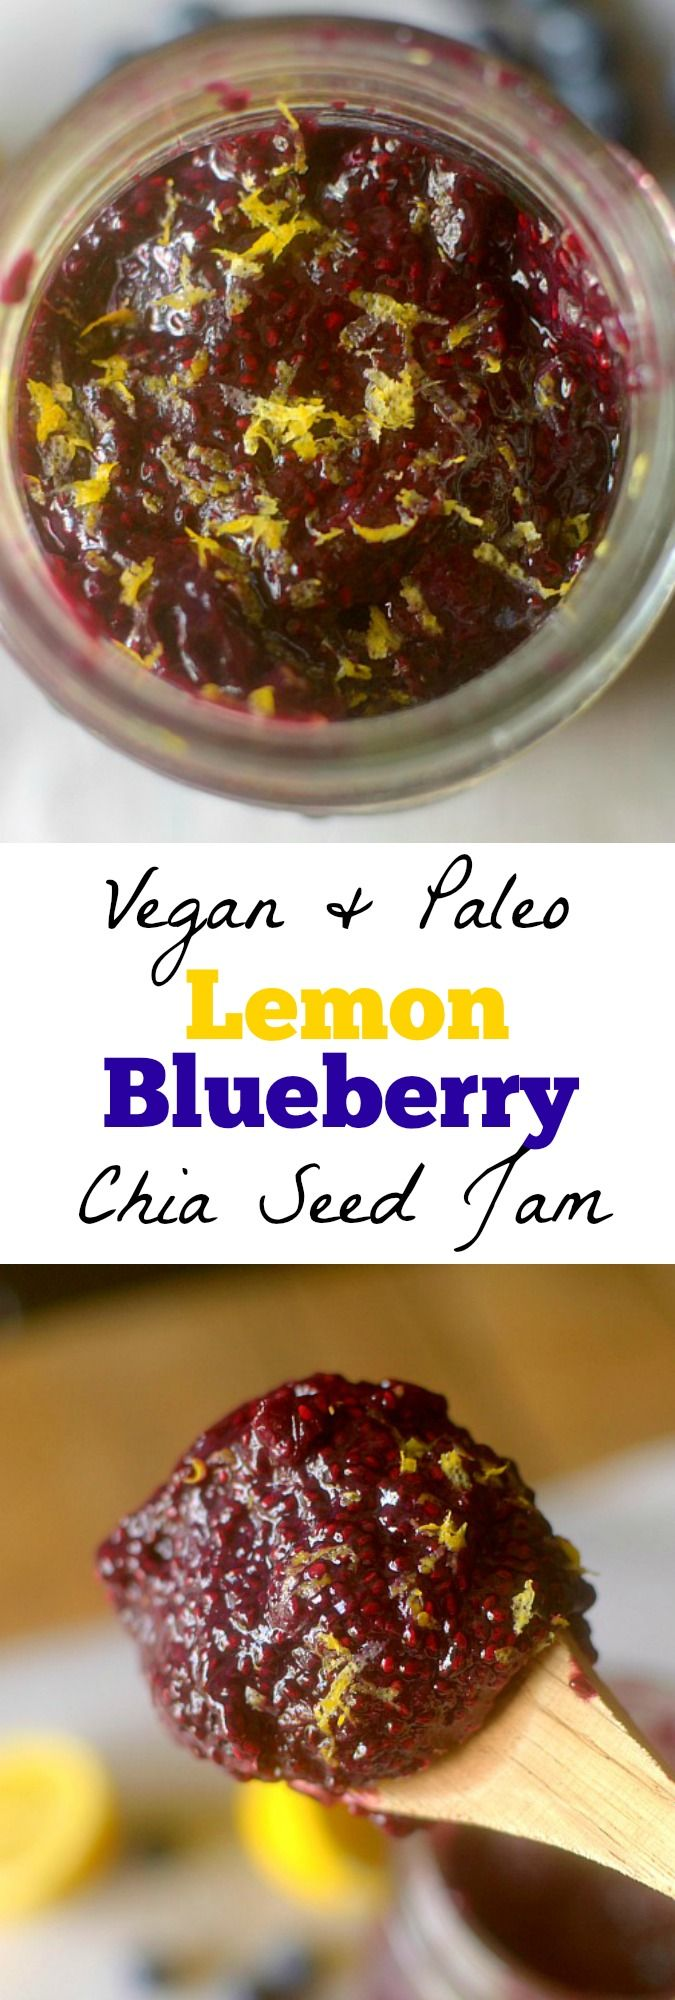 Healthy Lemon Blueberry Chia Seed Jam is an easy, refreshing summer jam recipe that can be made in less than 20 minutes w/ only 4 ingredients! Vegan + Paleo